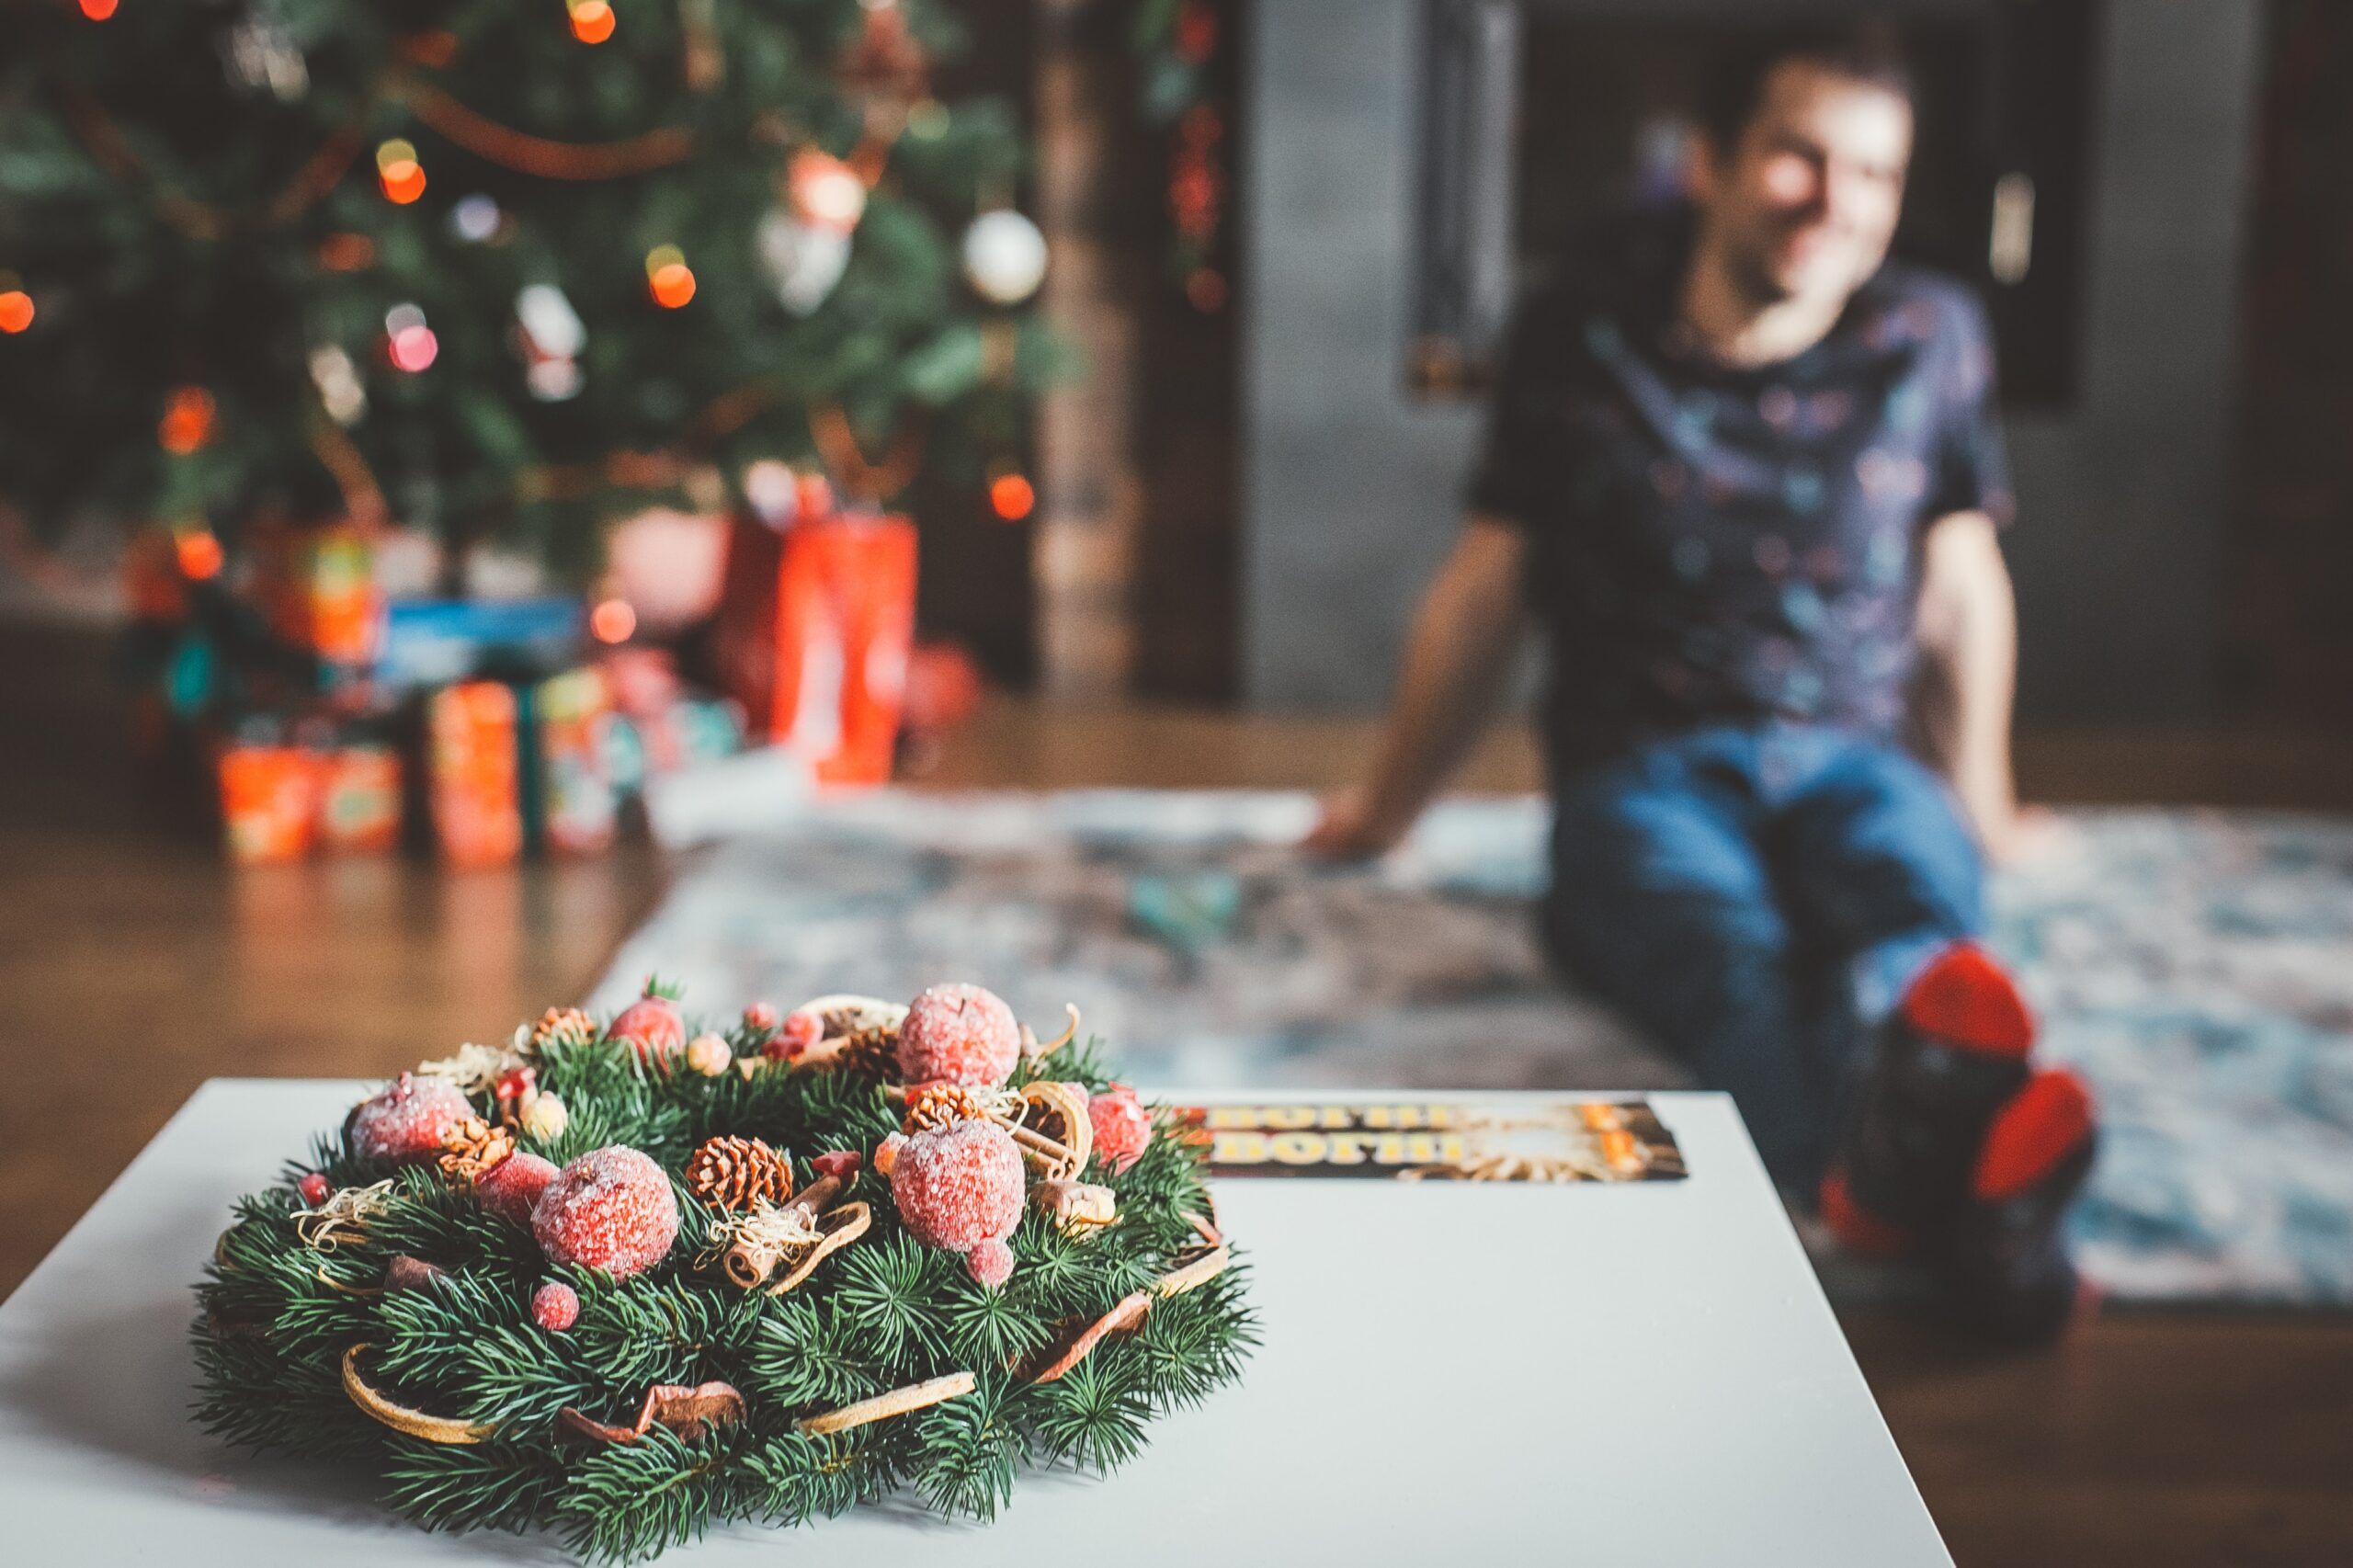 A man sitting on a rug watching a Christmas film, with a Christmas tree and a wreath